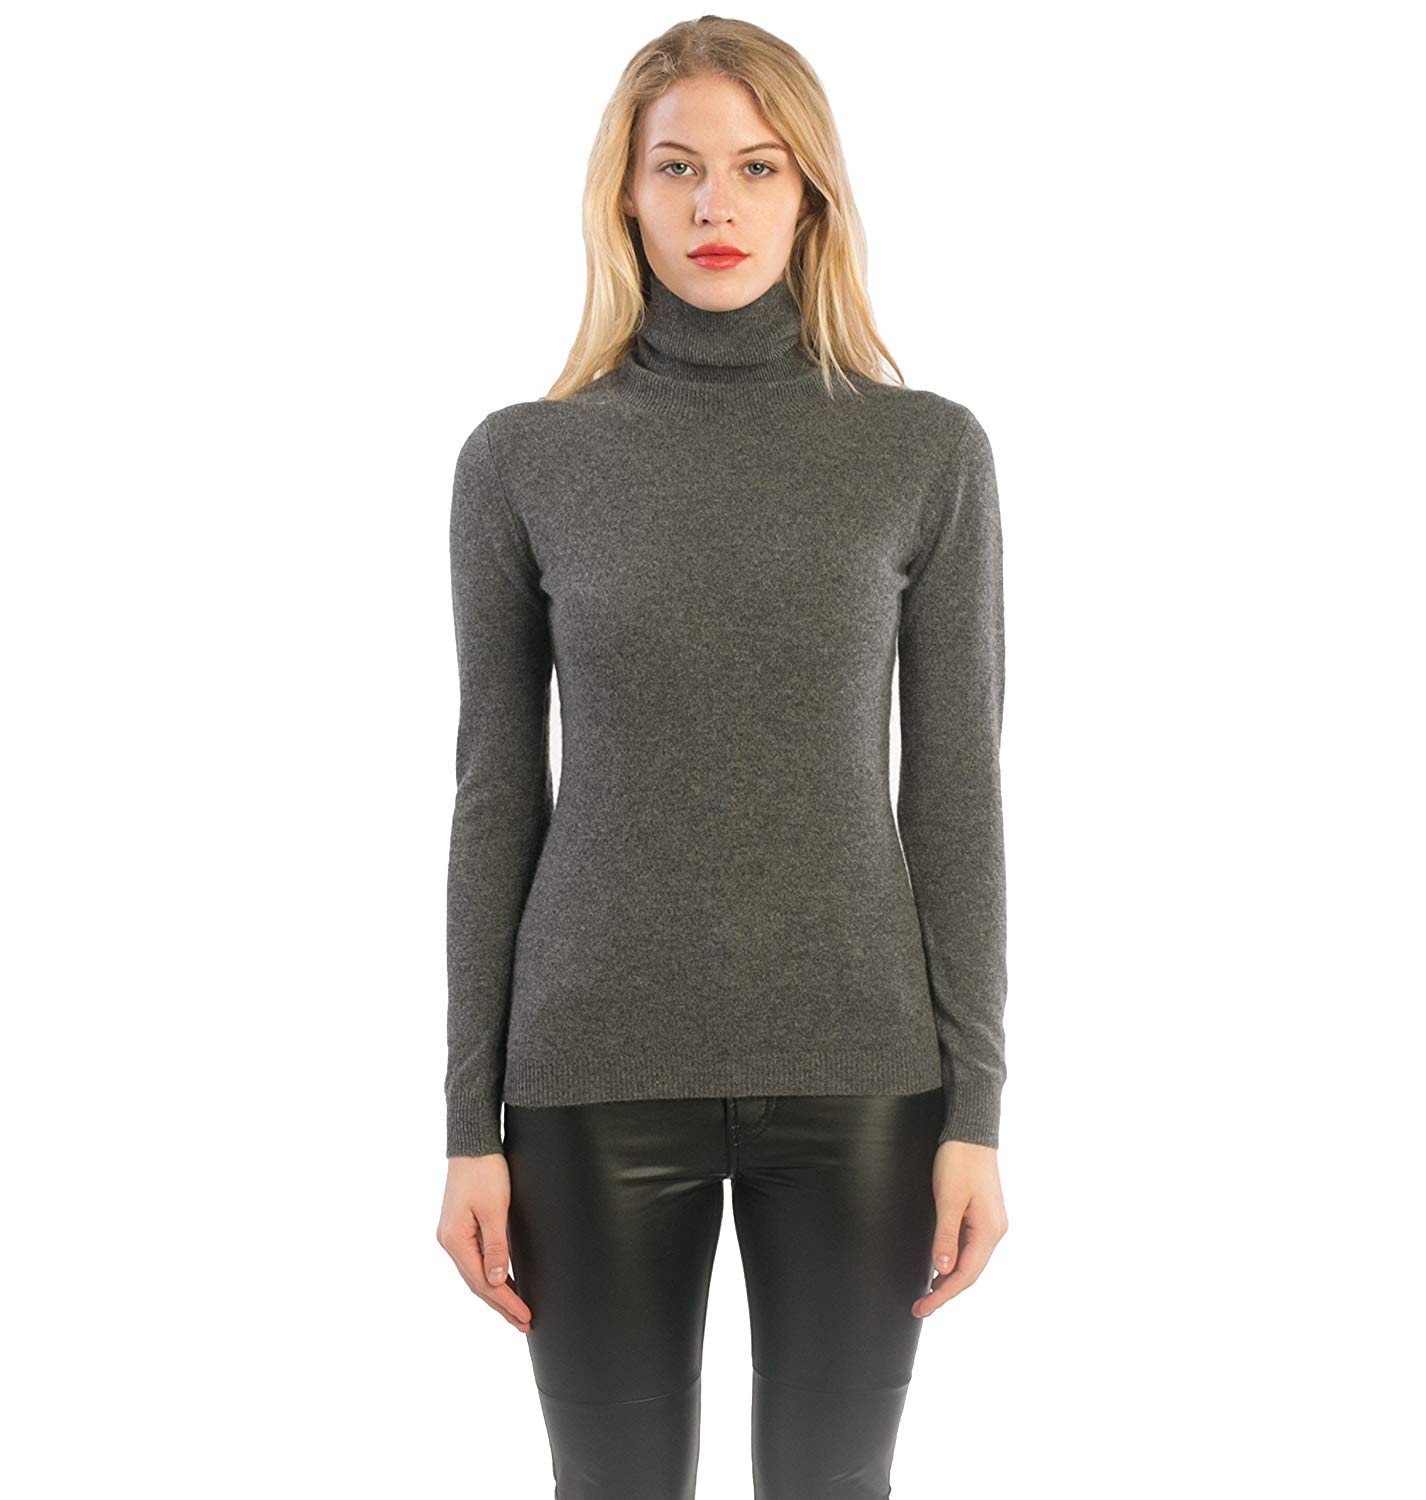 Cashmere 100 Women sweater dresses best photo